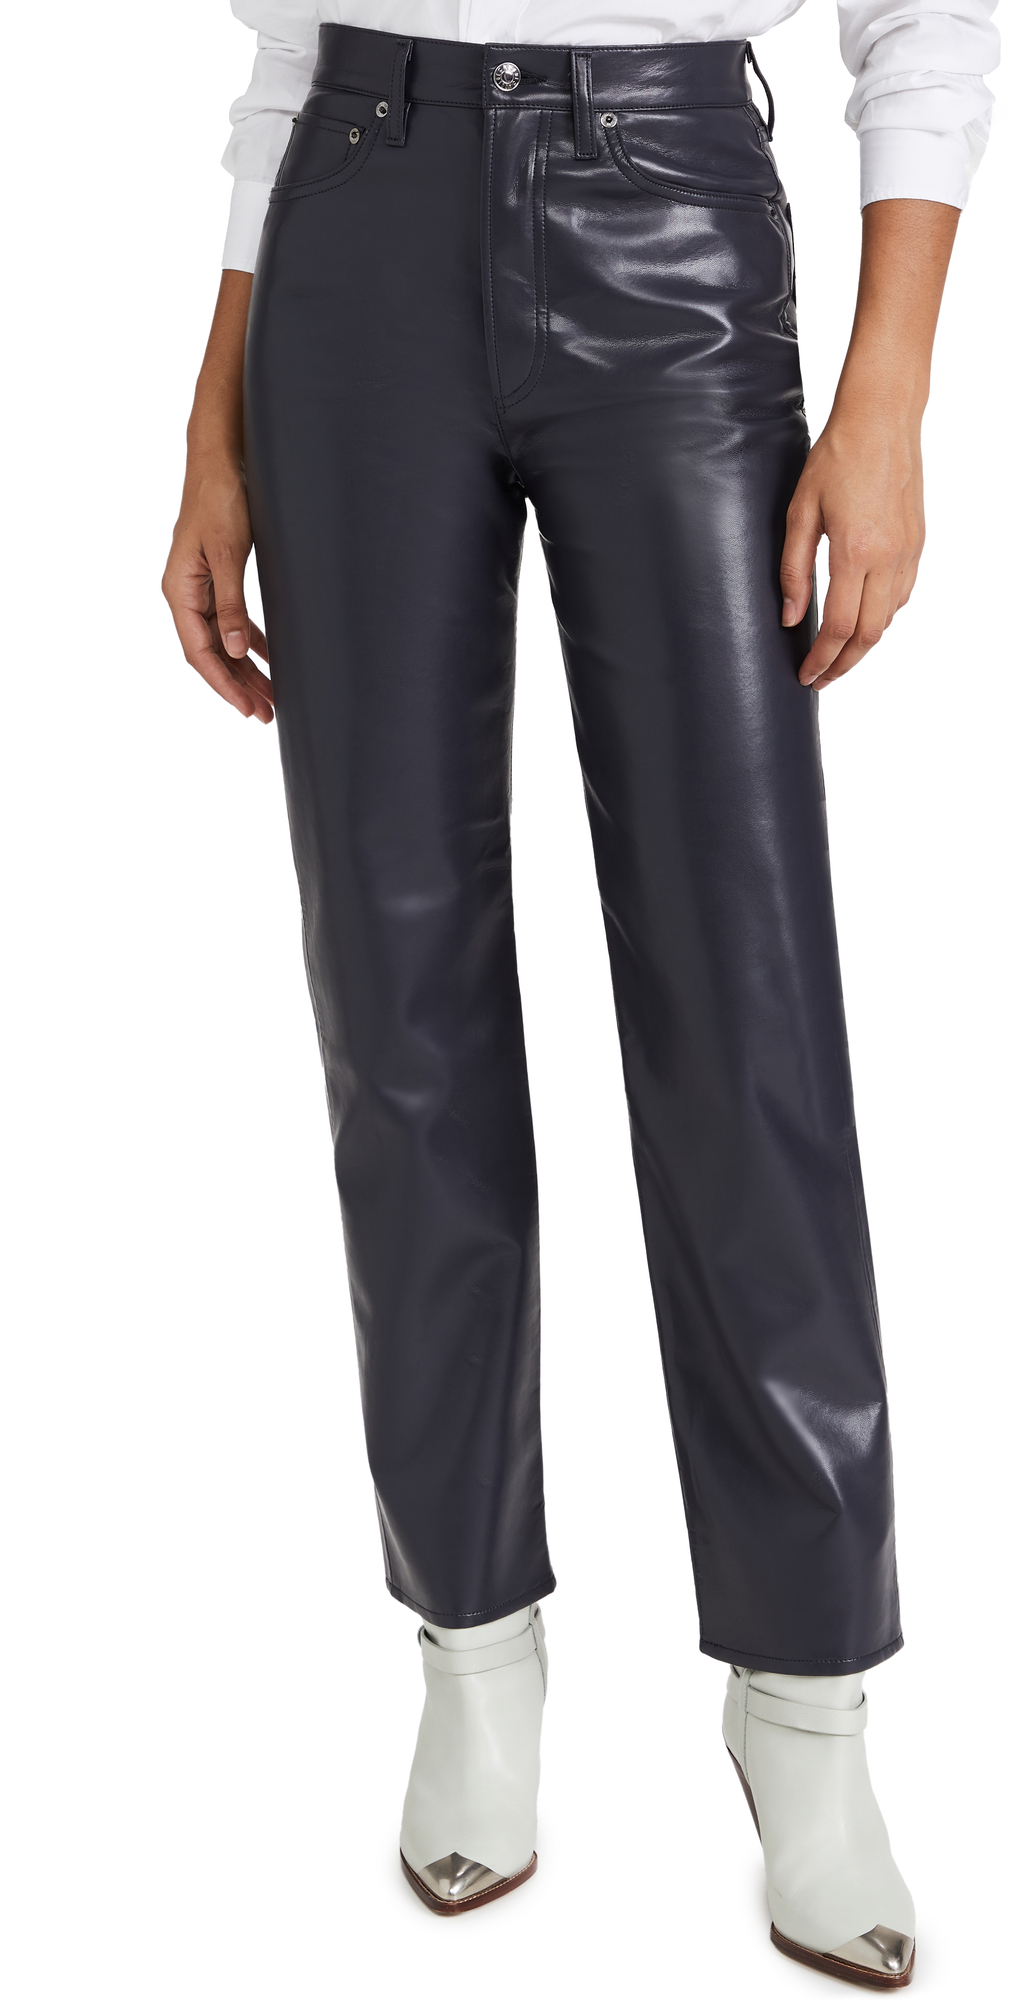 AGOLDE Recycled Leather 90'S Pinch Waist: High Rise Straight Jeans